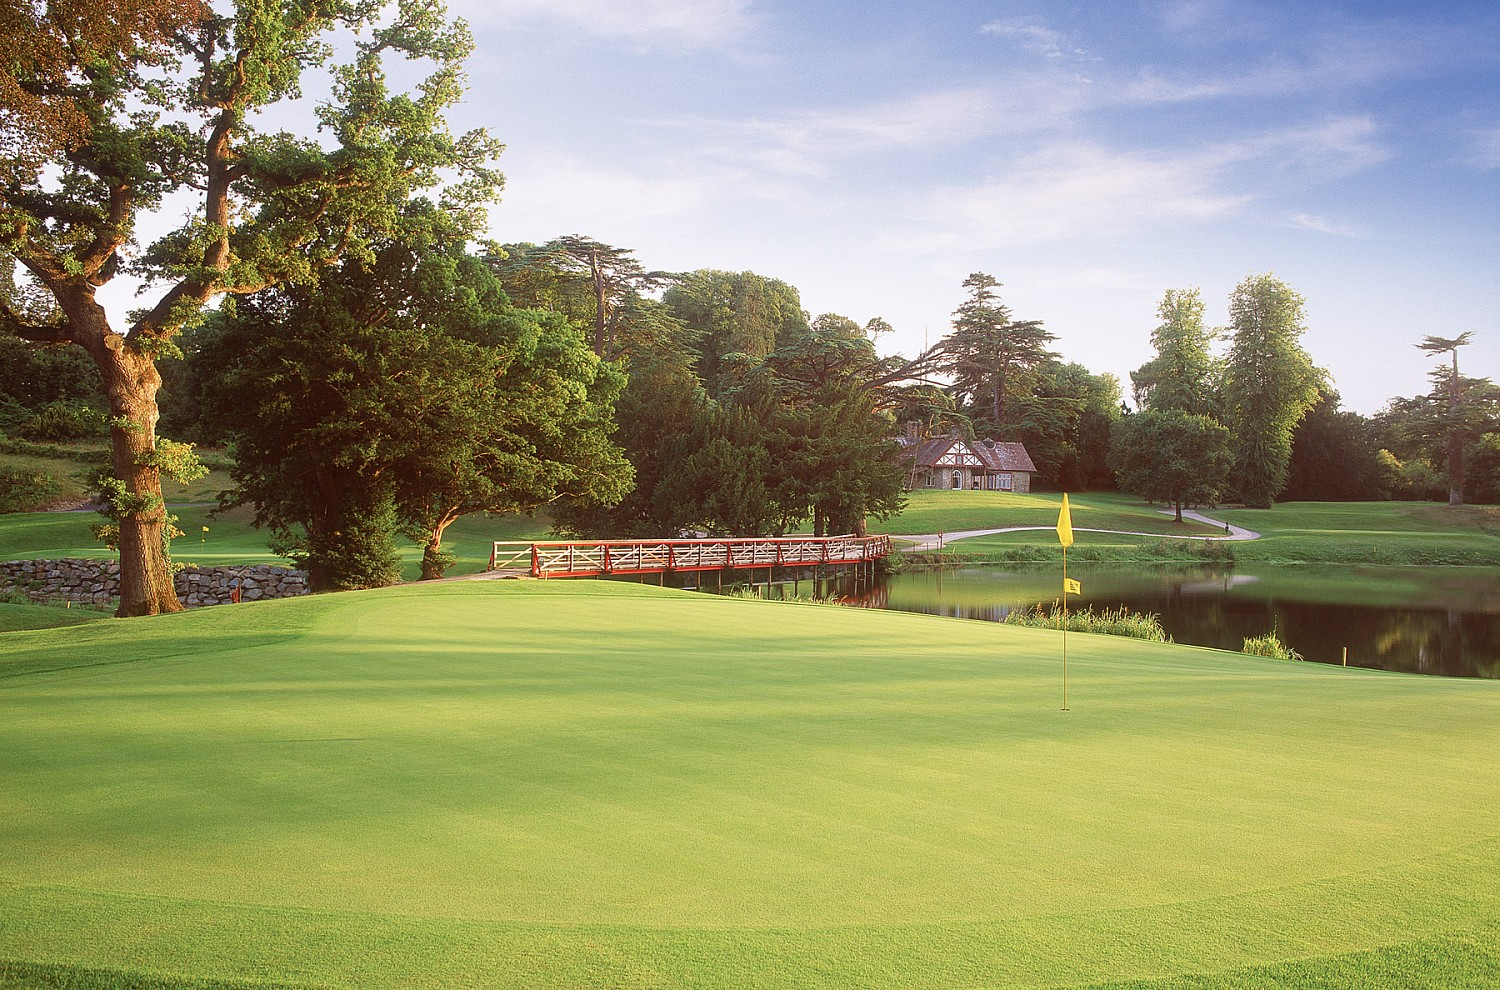 Overview of golf course named Carton House Golf Club - The O'Meara Course